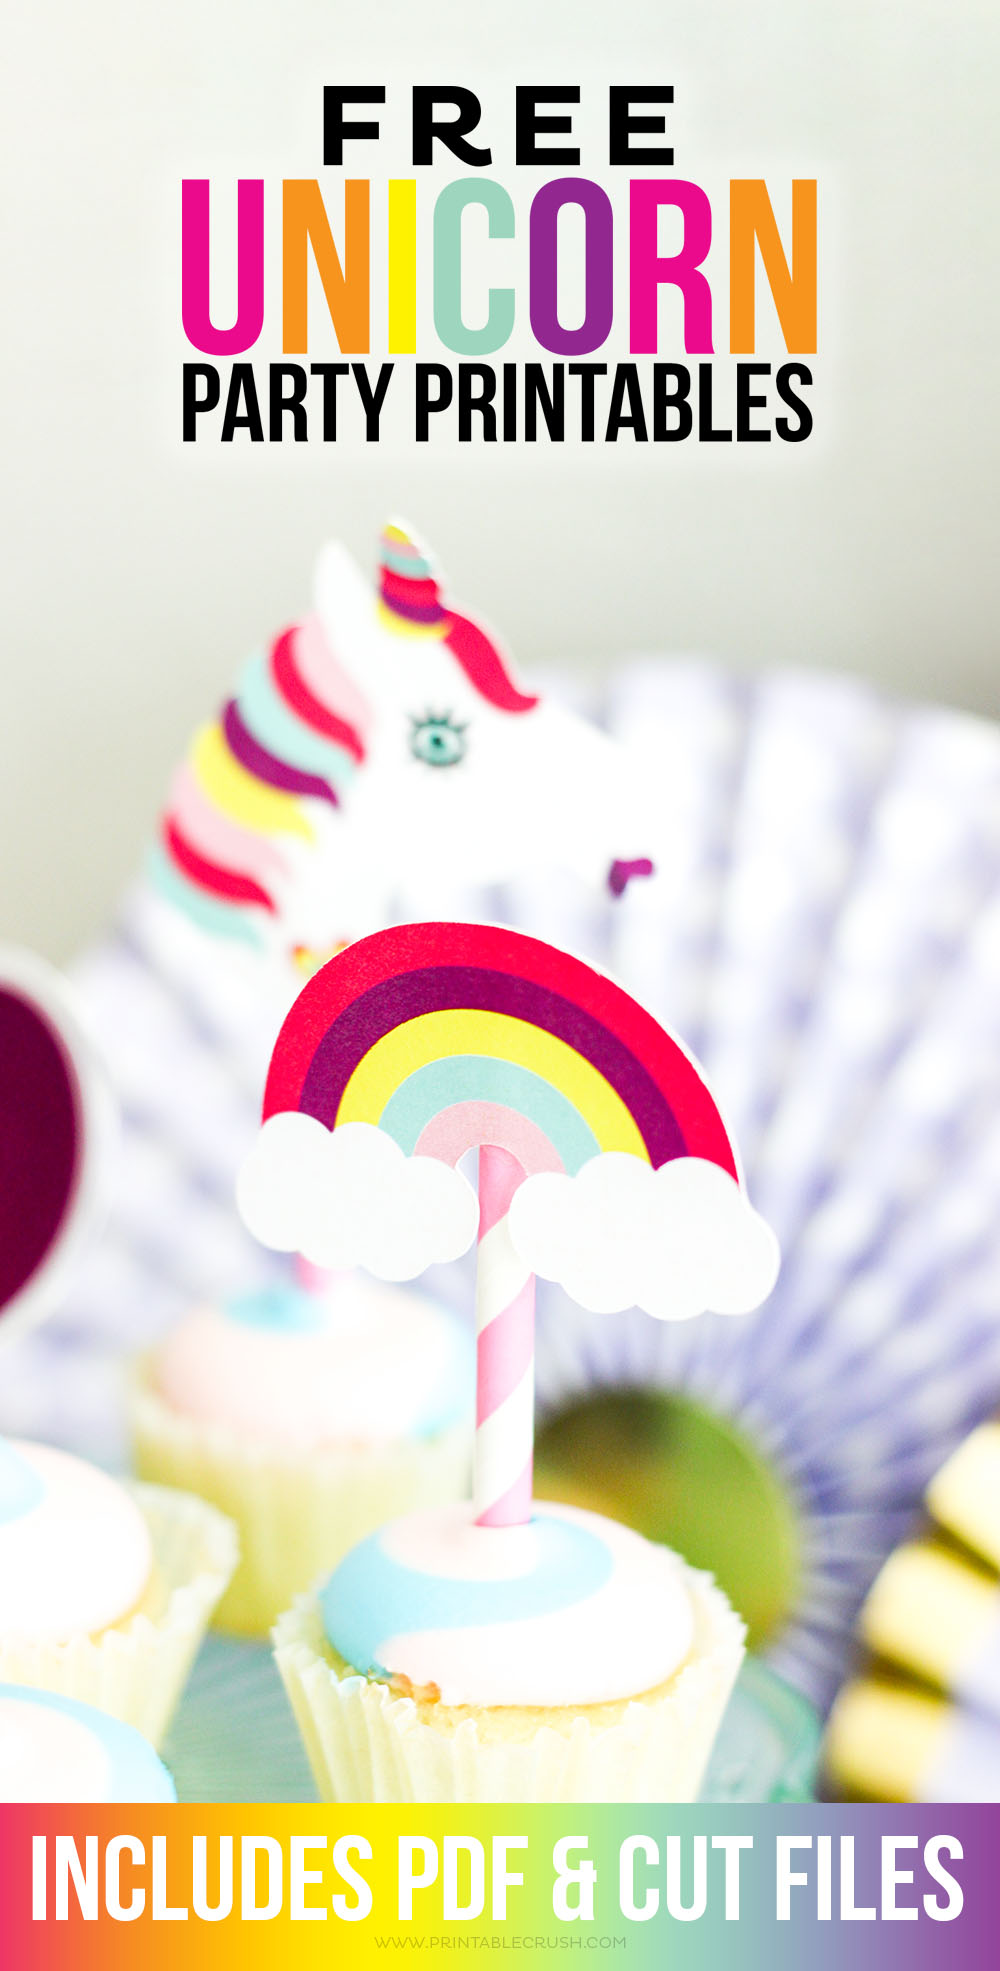 Download these FREE Unicorn Party Printables for a colorful and fun party! Includes PDF and Cricut Cut files for adorable cupcake toppers and juice box wrappers.